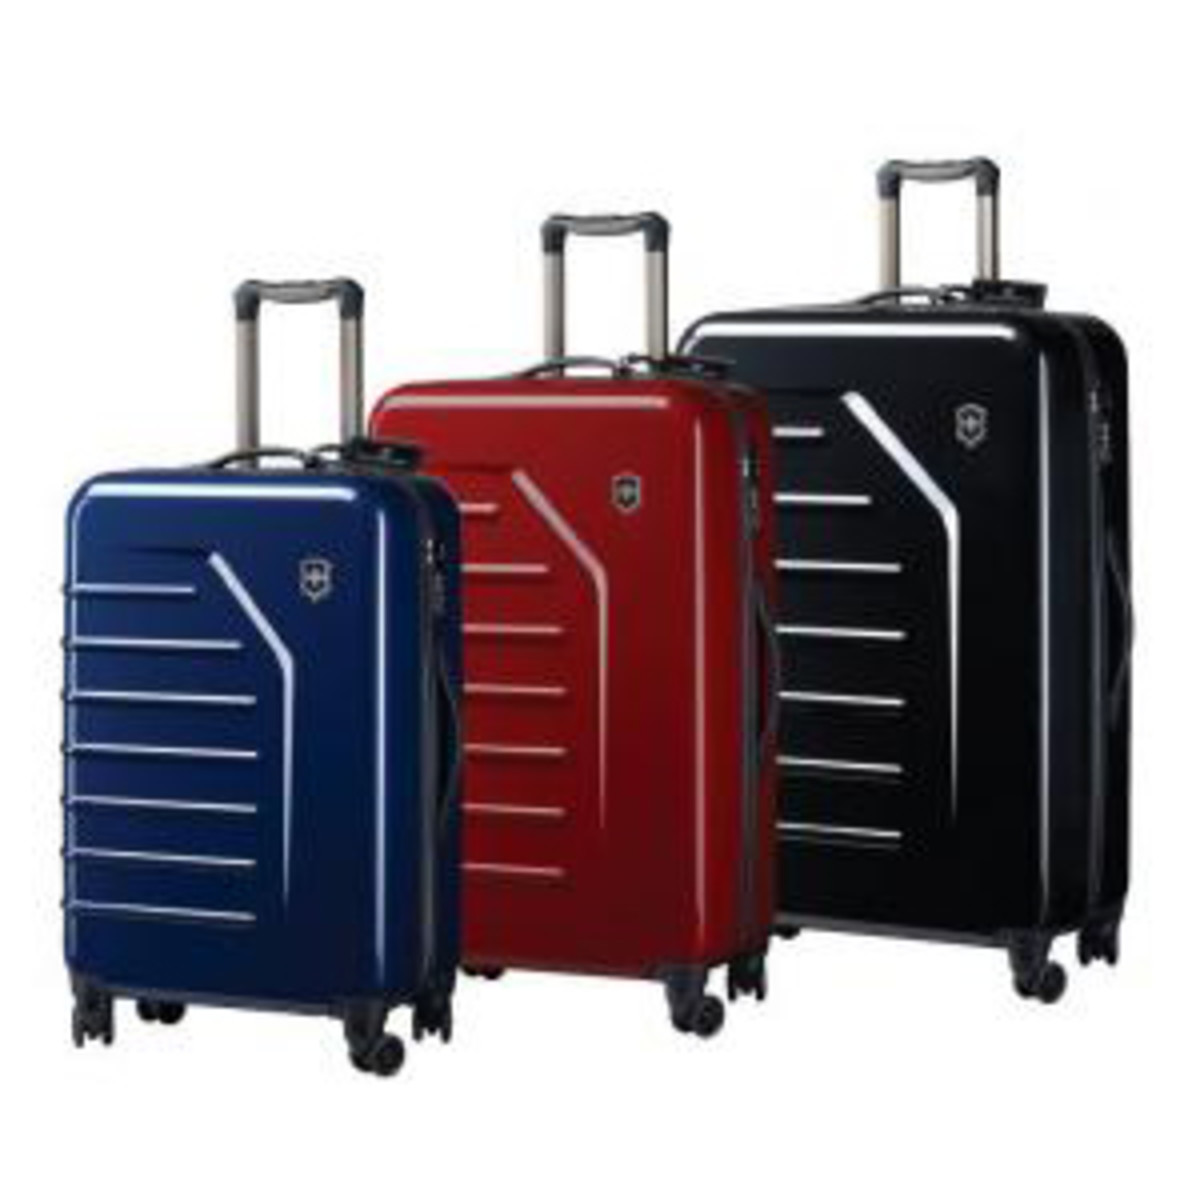 Which hardside luggage brands are the most reliable?